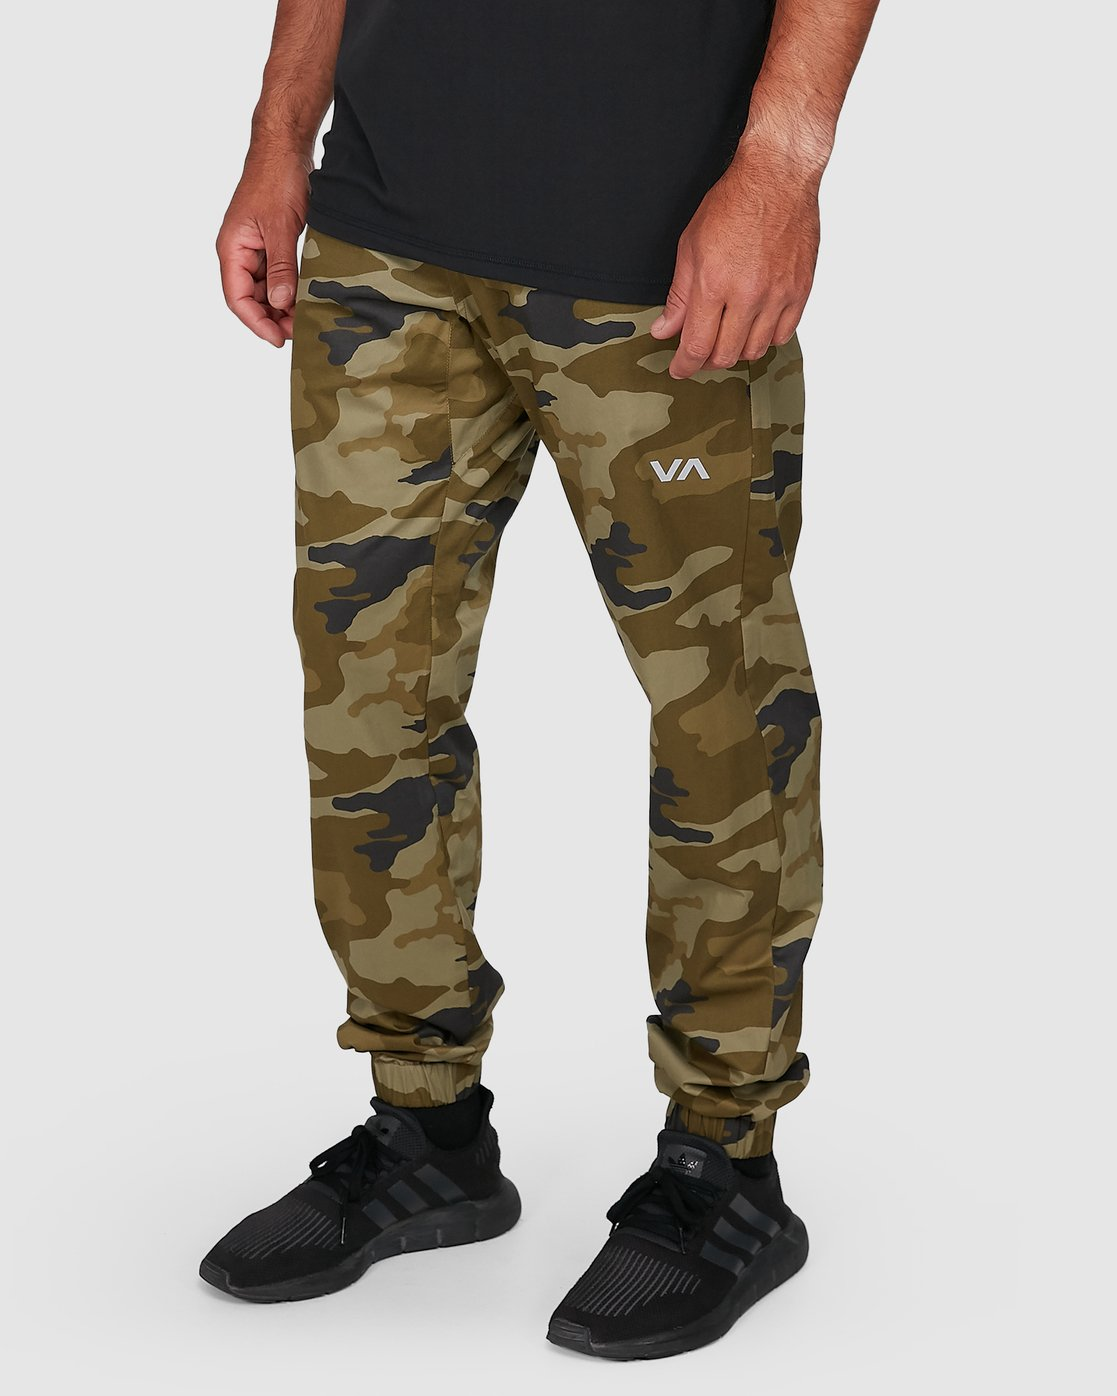 3 SPECTRUM CUFFED PANTS Green R307276 RVCA